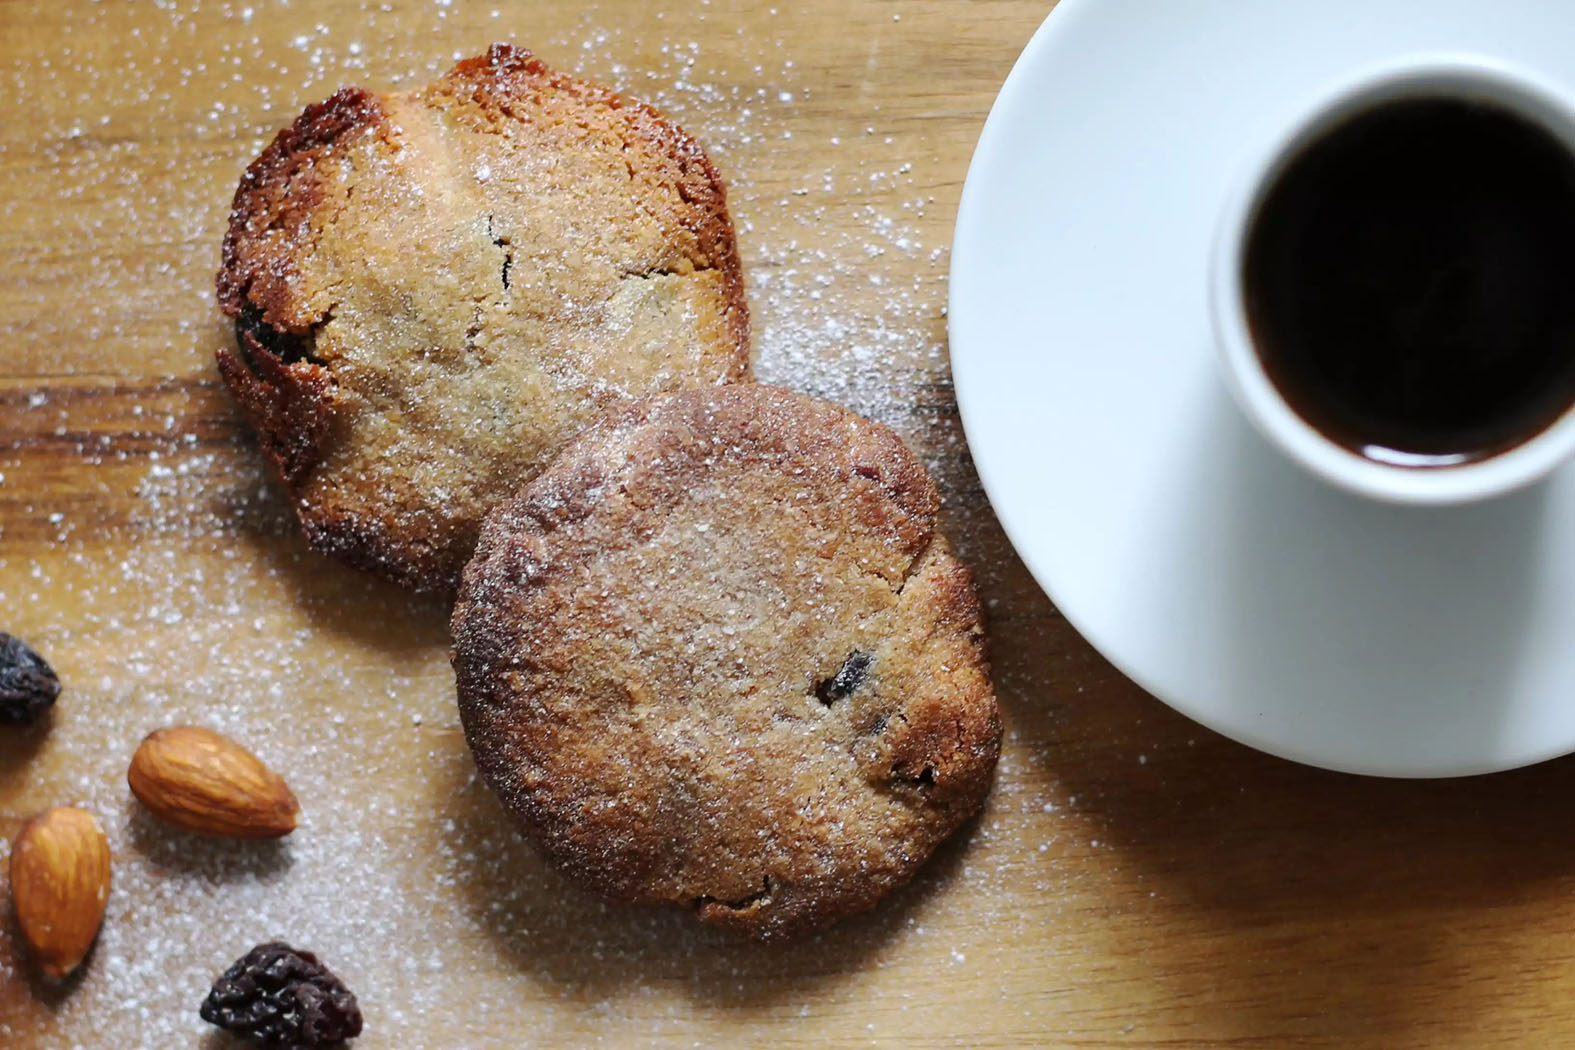 Cinnamon & Raisin Almond Flour Cookies